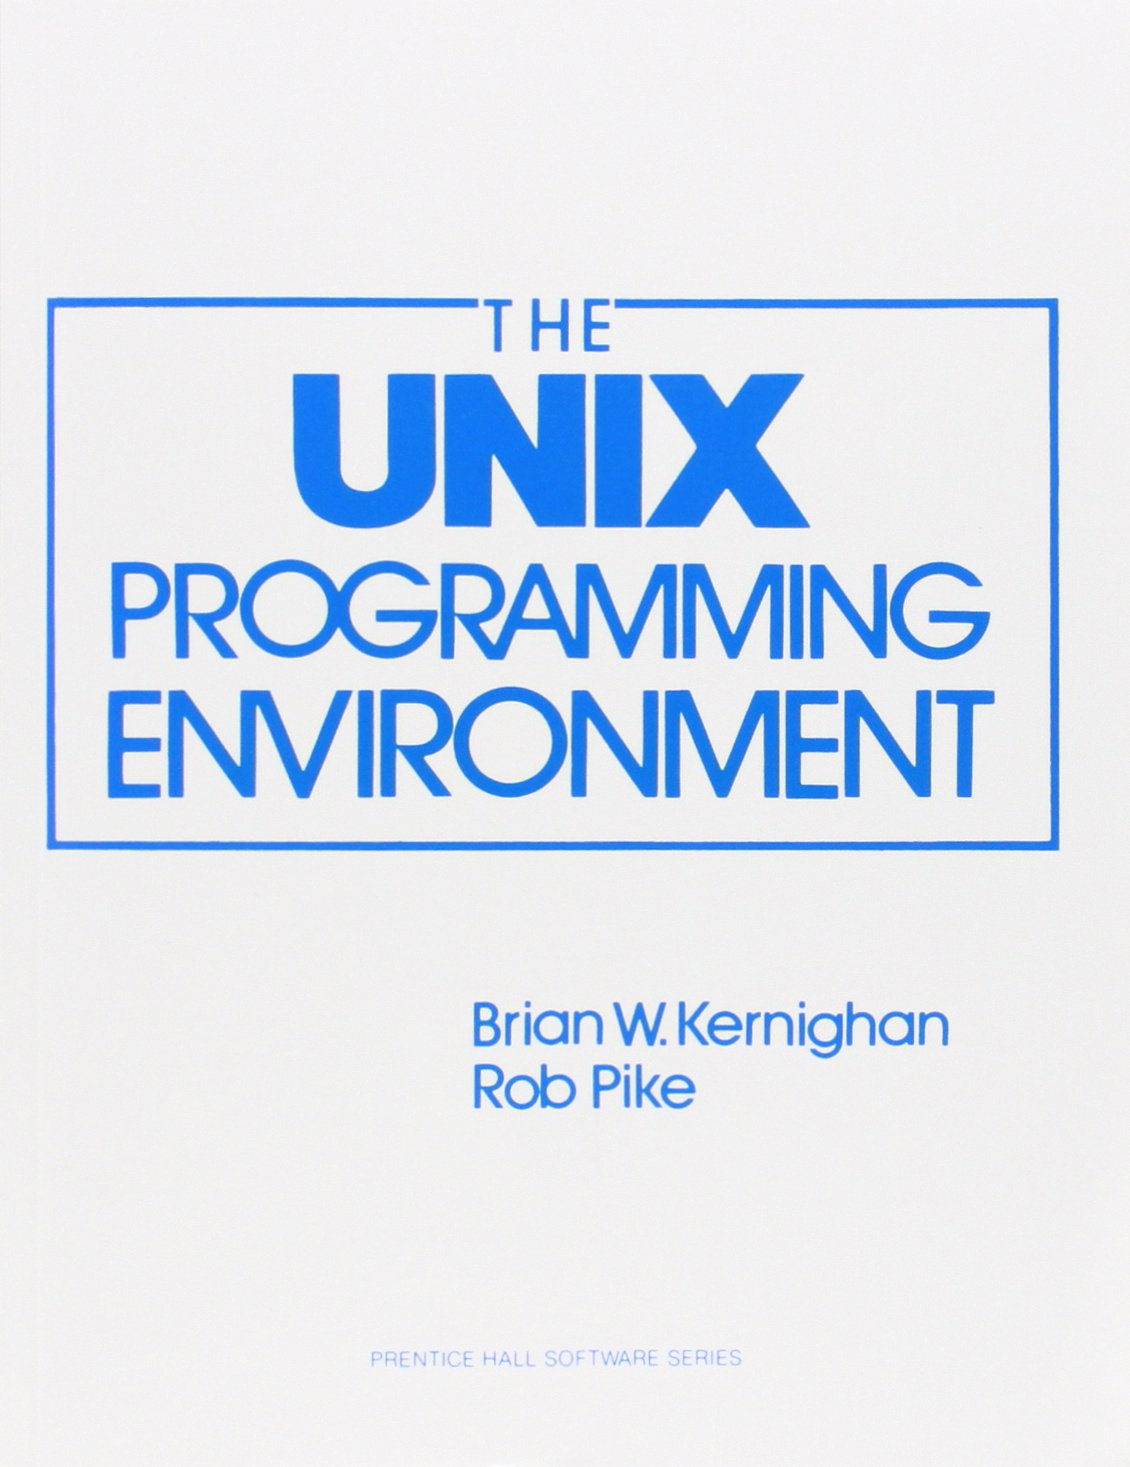 unix programming The art of unix program-ming rule of robustness: robustness is the child of transparency and simplicity 41 rule of representation: fold knowledge into data, so program logic can be.